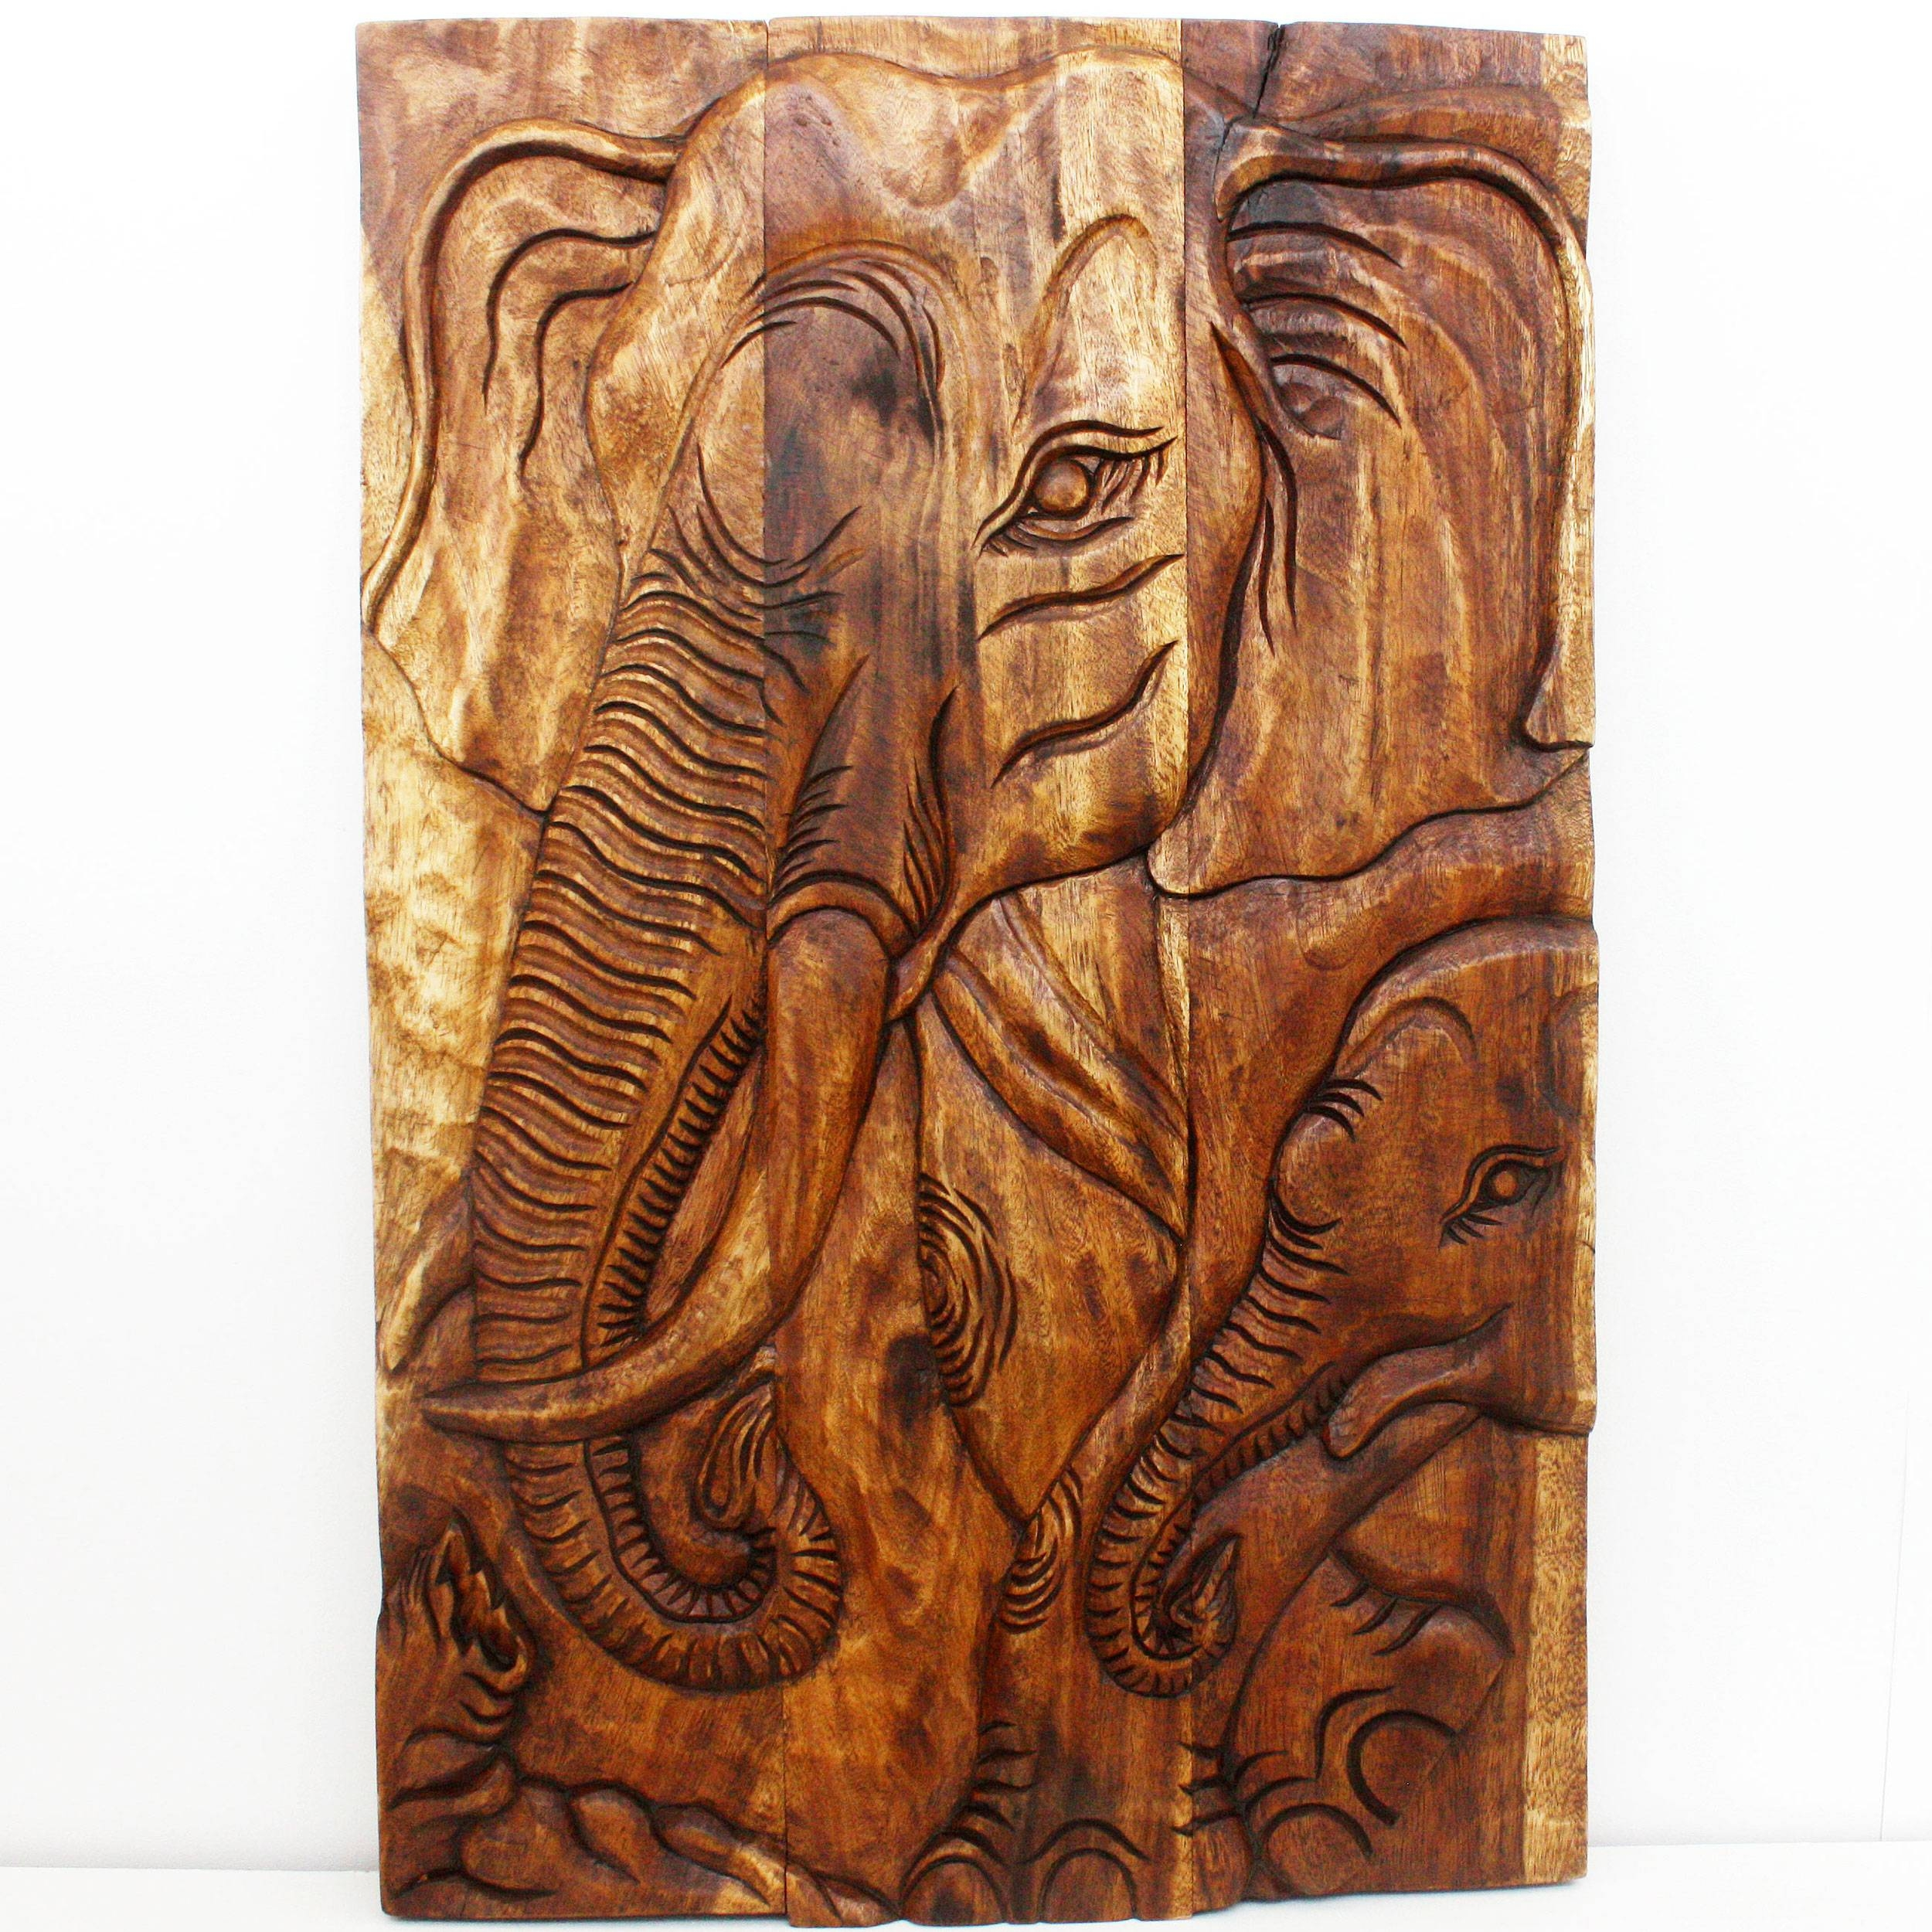 Wall Decor Thailand Wood Art Panels Nature Carvings Regarding Most Current Wood Wall Art Panels (View 16 of 20)